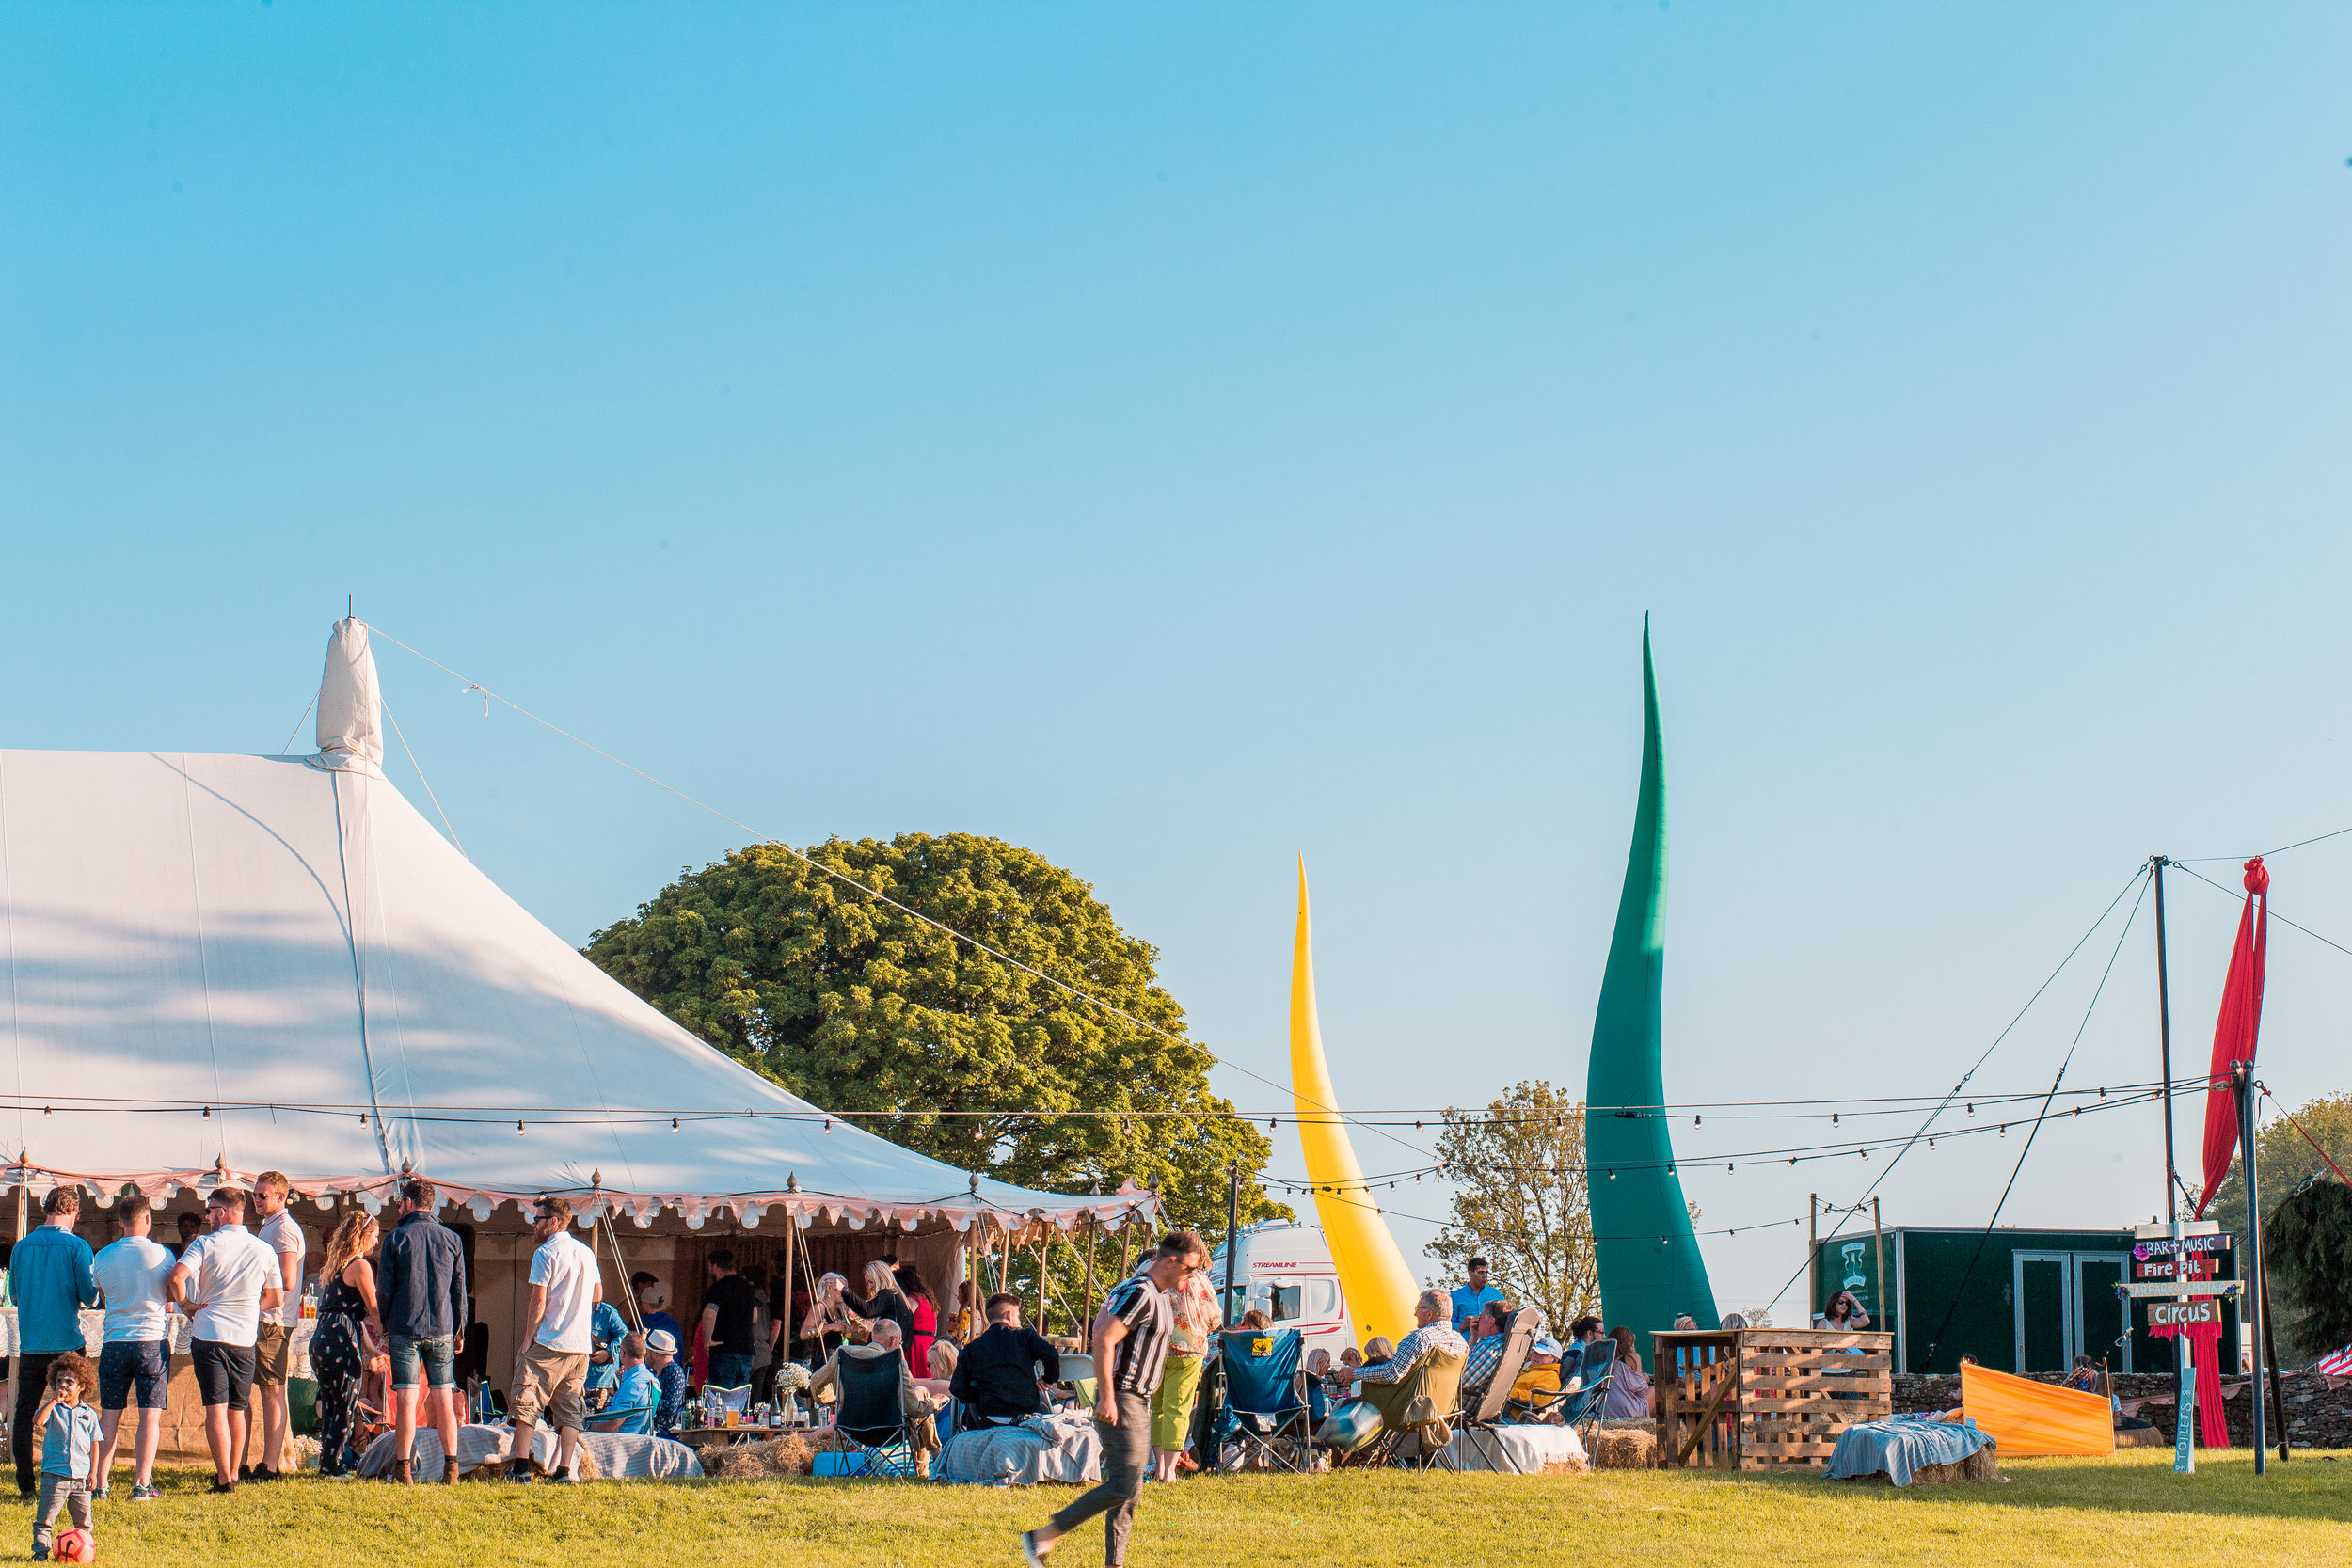 A marquee covered dance floor and the most impressive inflatable sculptures!